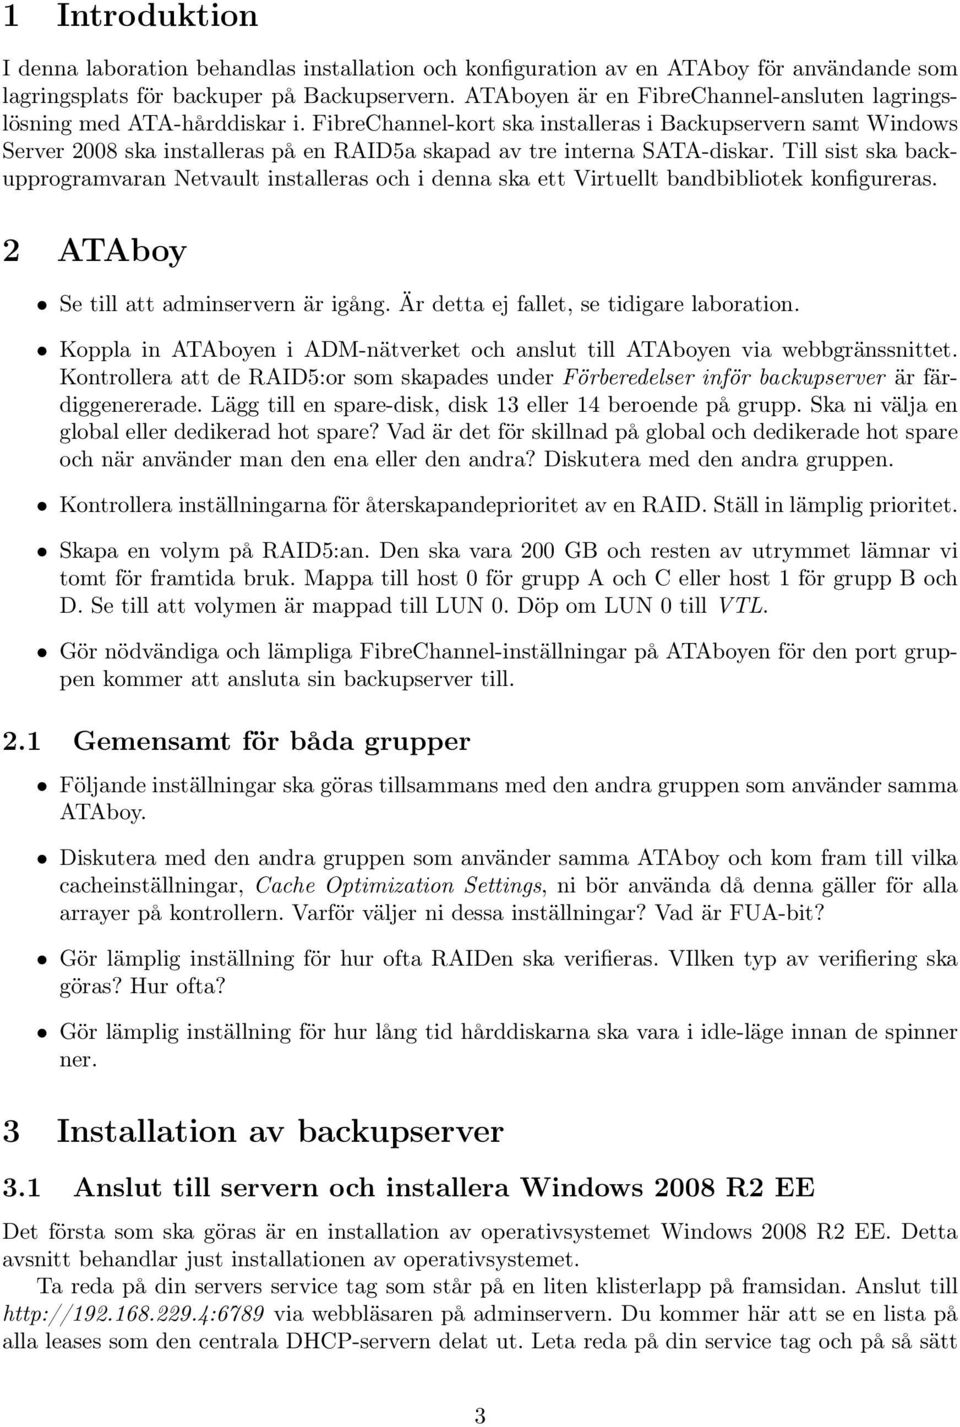 FibreChannel-kort ska installeras i Backupservern samt Windows Server 2008 ska installeras på en RAID5a skapad av tre interna SATA-diskar.